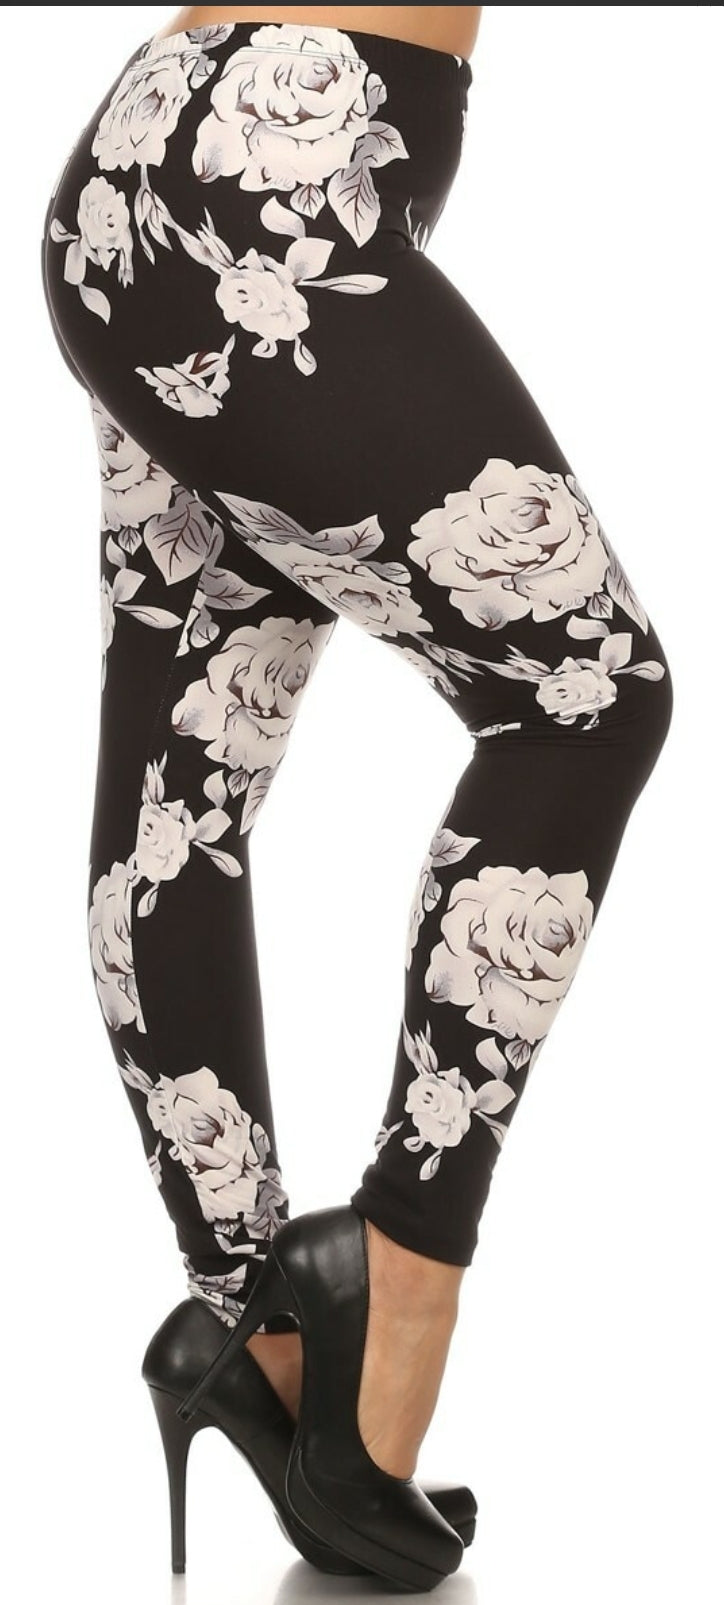 CREAMY SOFT JUMBO WHITE ROSE LEGGINGS